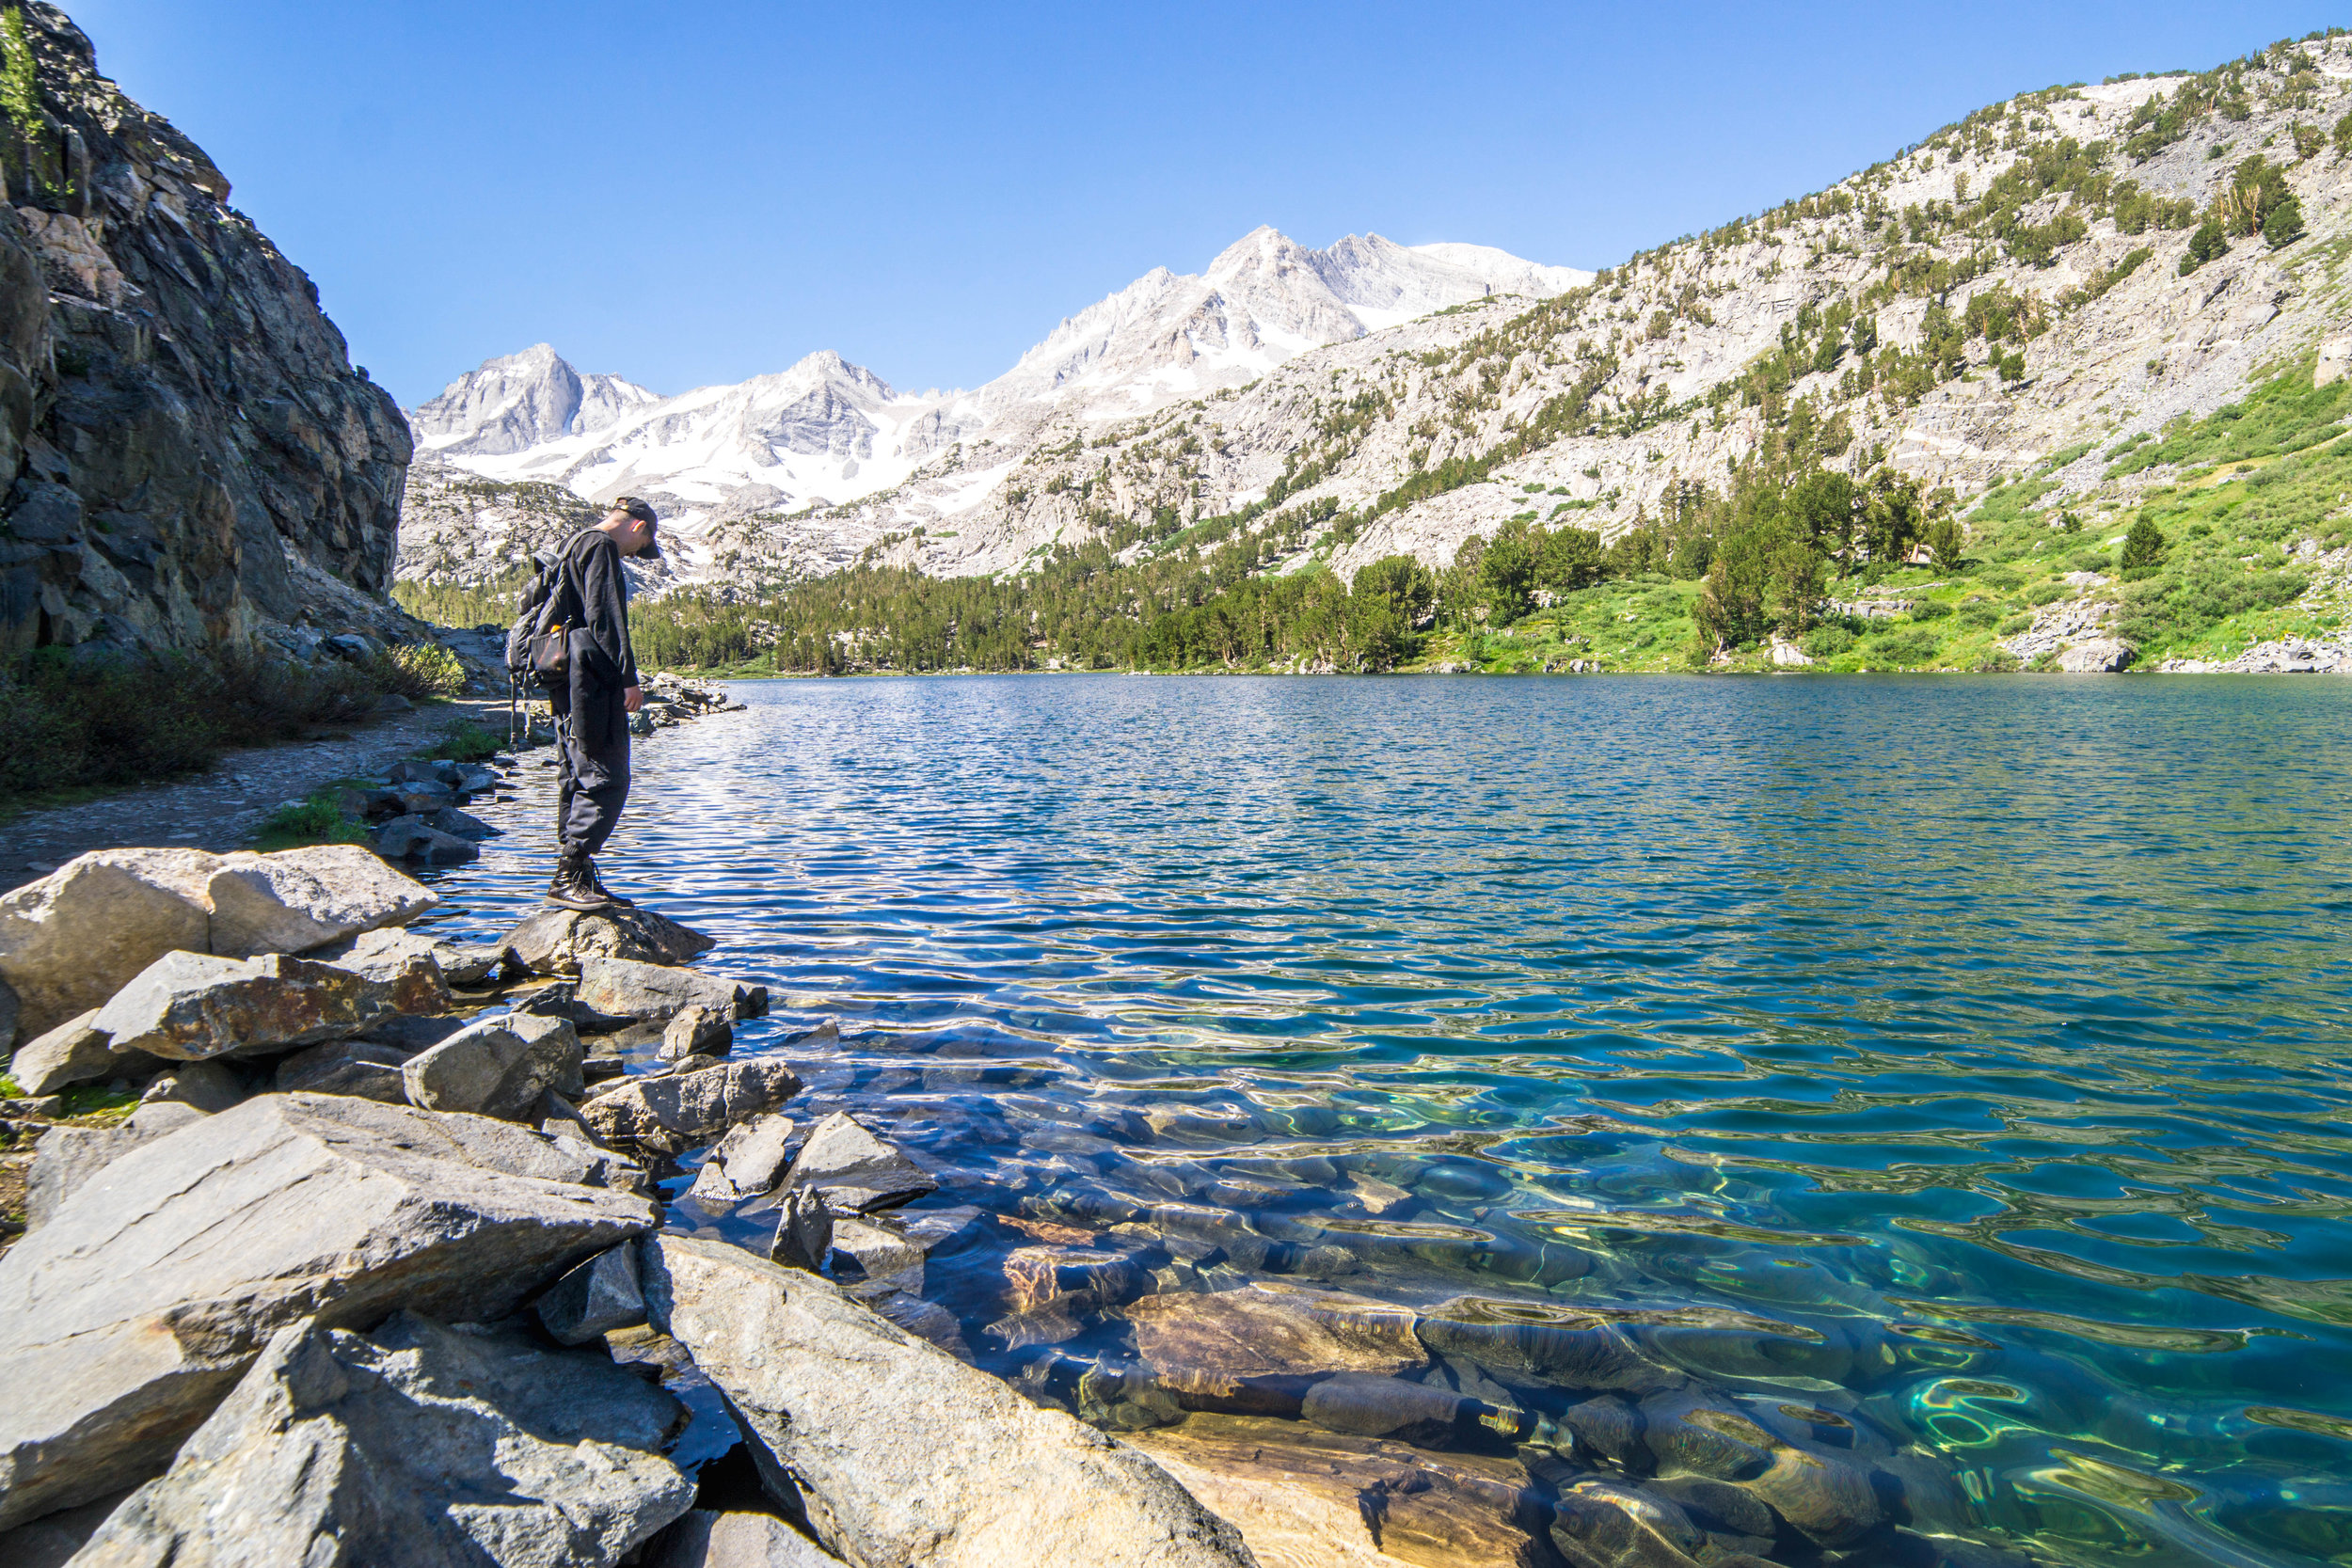 This trail extends deep into the Sierras, affording an escape from the more crowded day hiking trails. Not this trip, but another we'll be back to explore the possibilities even further.